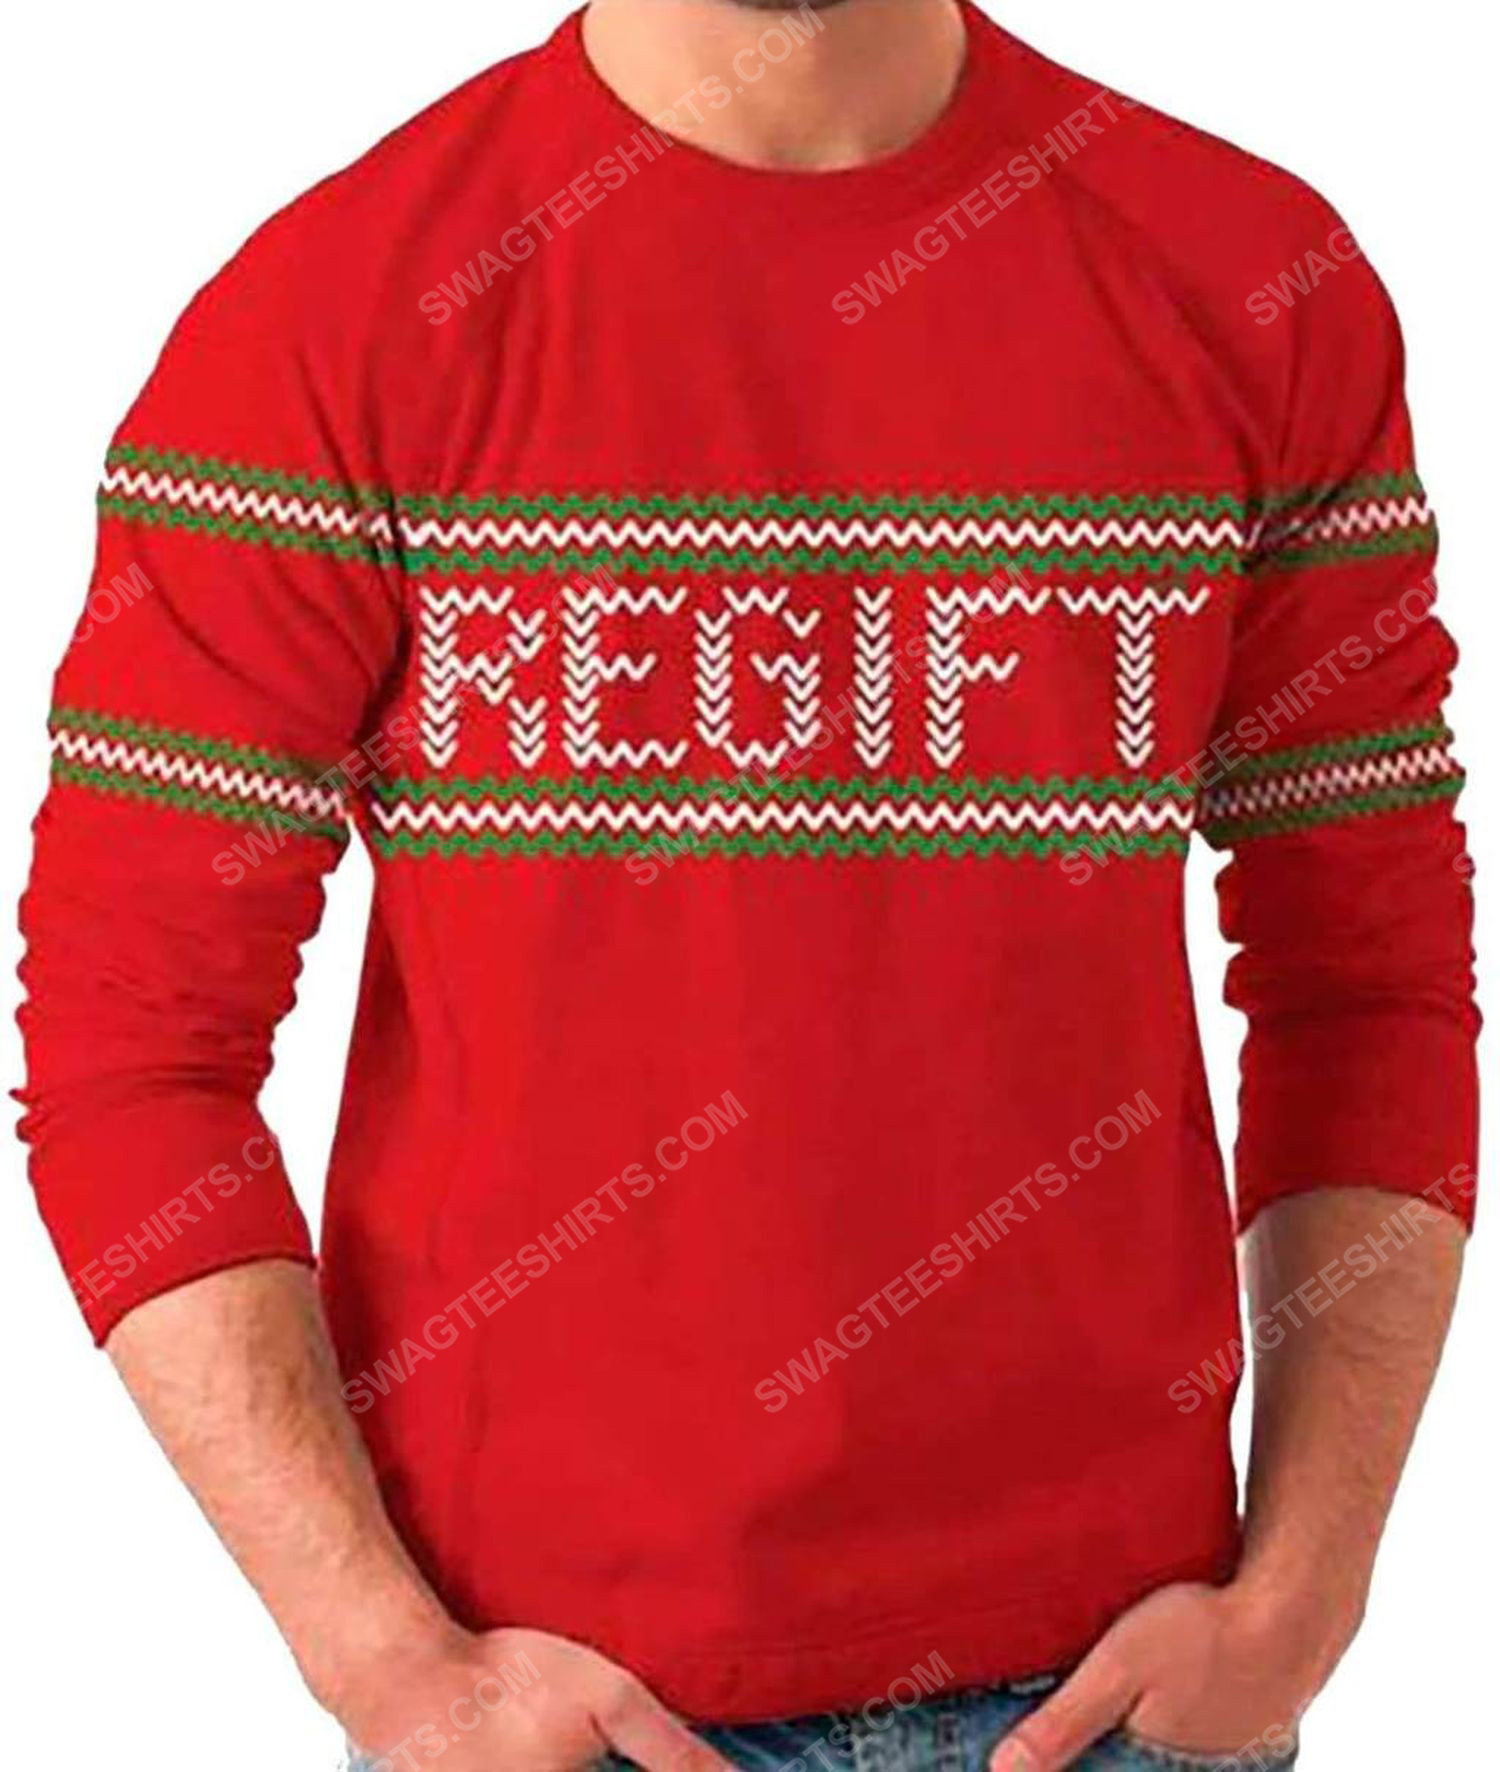 Holiday present regift full print ugly christmas sweater 2 - Copy (2)